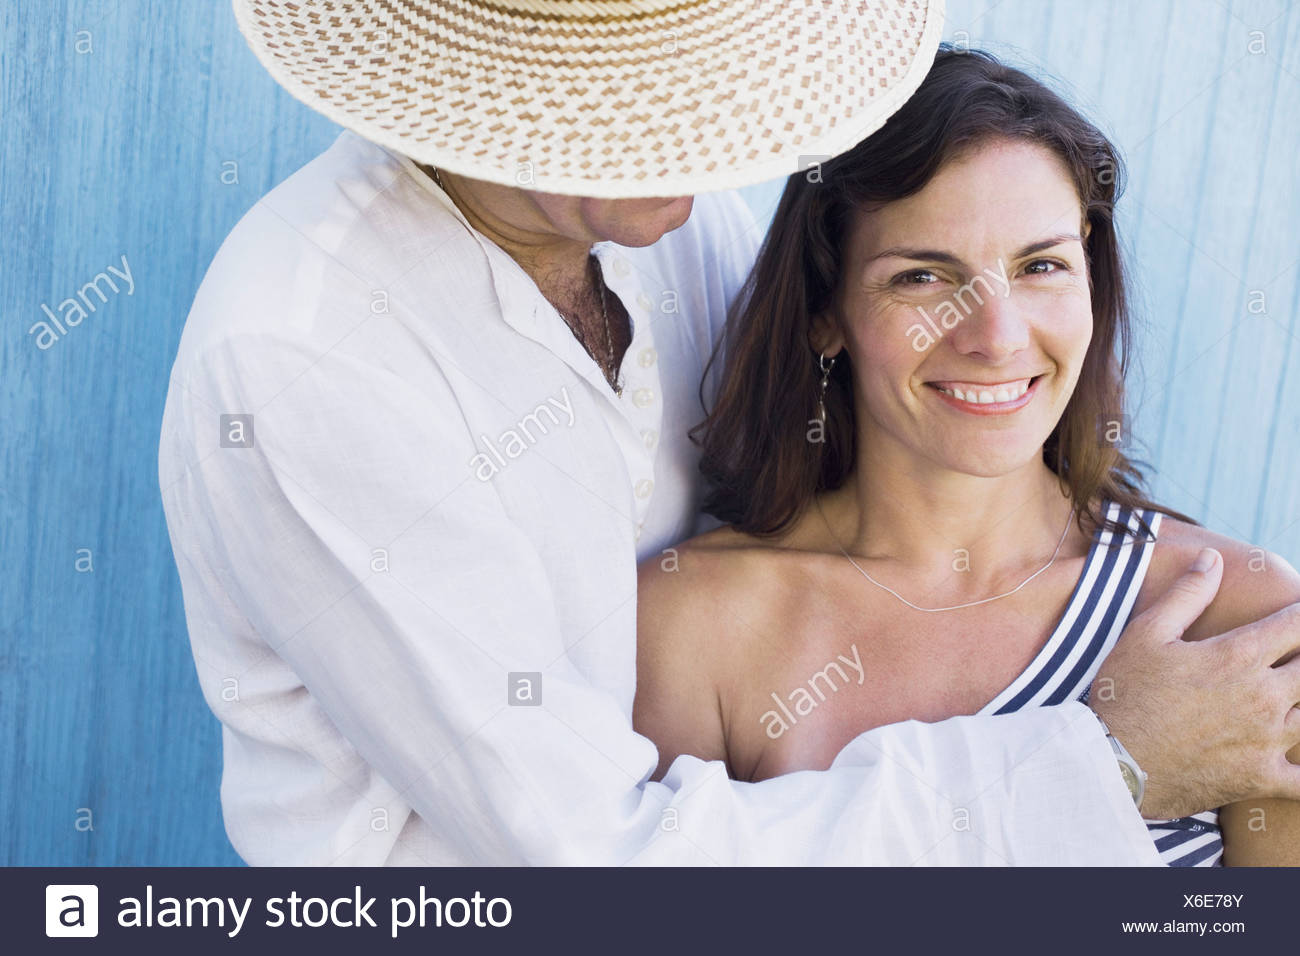 Side profile of a mid adult man embracing a mid adult woman - Stock Image